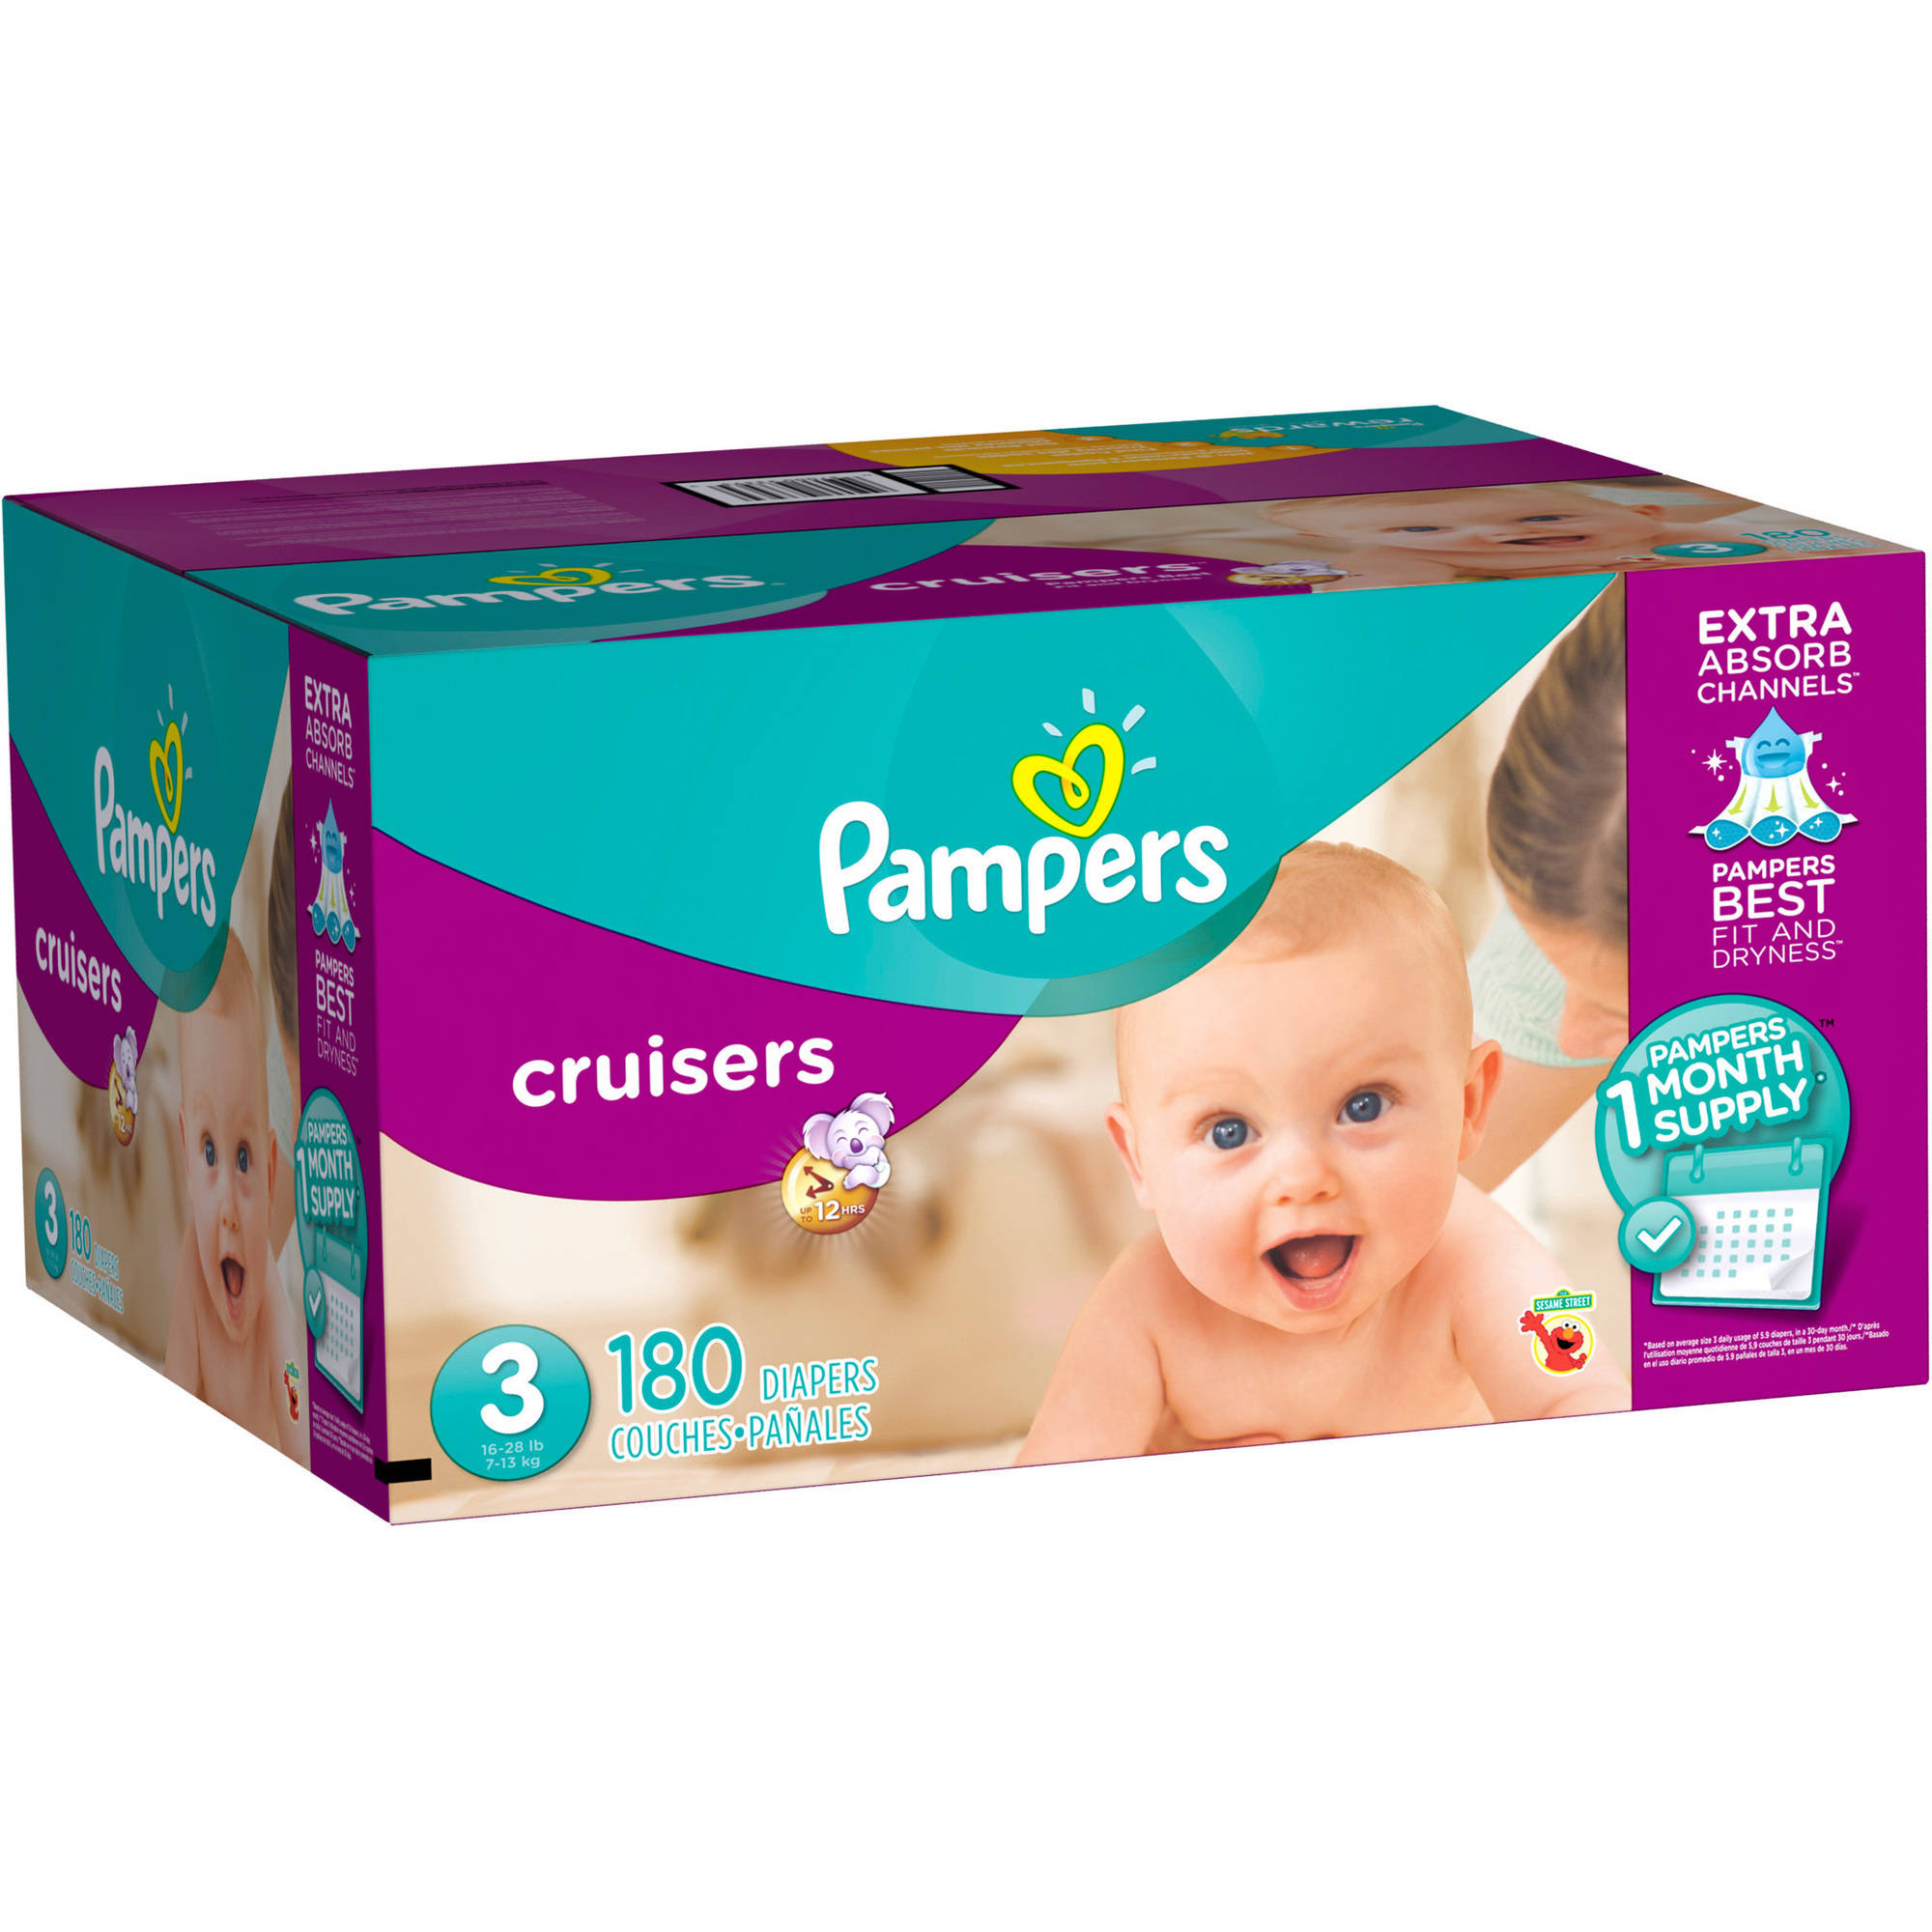 Pampers Cruisers Diapers One Month Supply, (Choose Your Size)